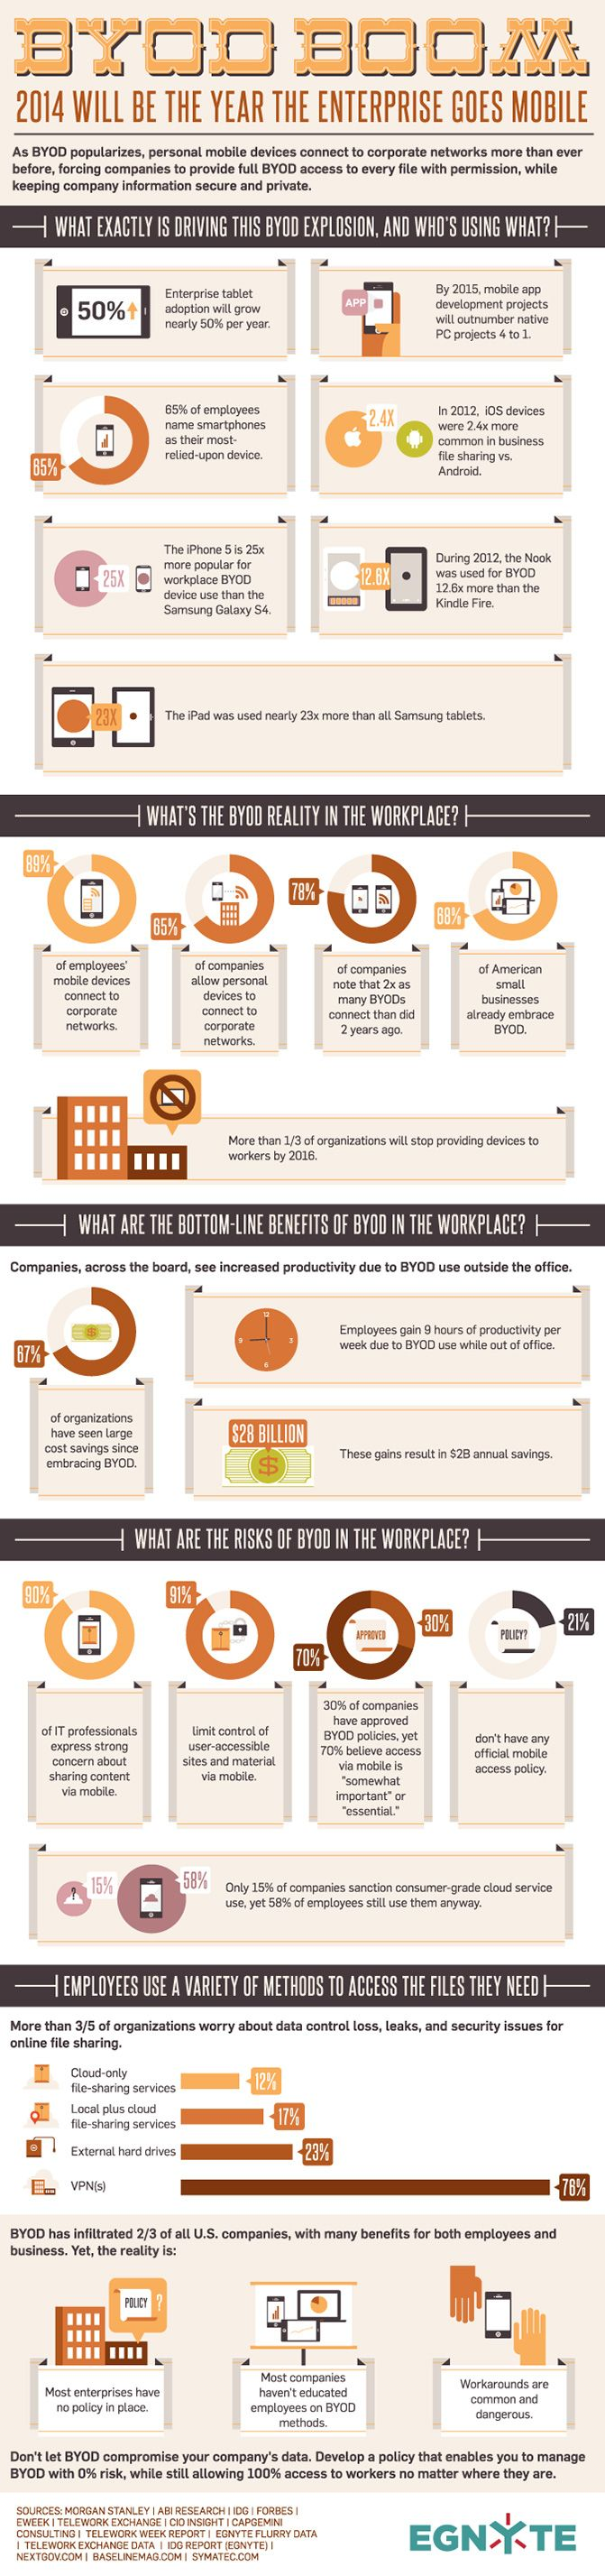 What Is Driving The Growth Of Bring Your Own Device (BYOD) In The Workplace? #infographic